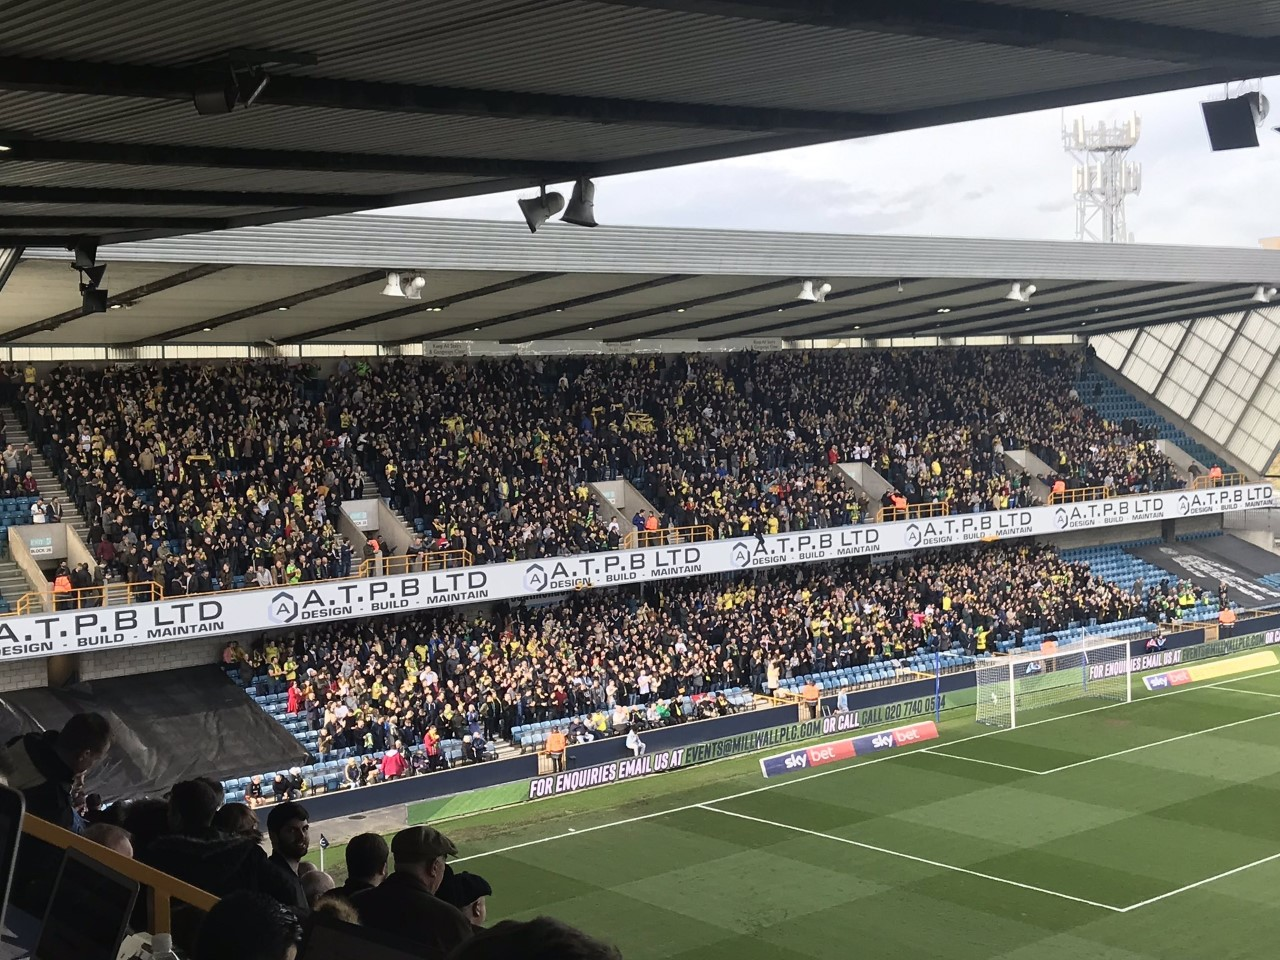 Millwall away March 2019